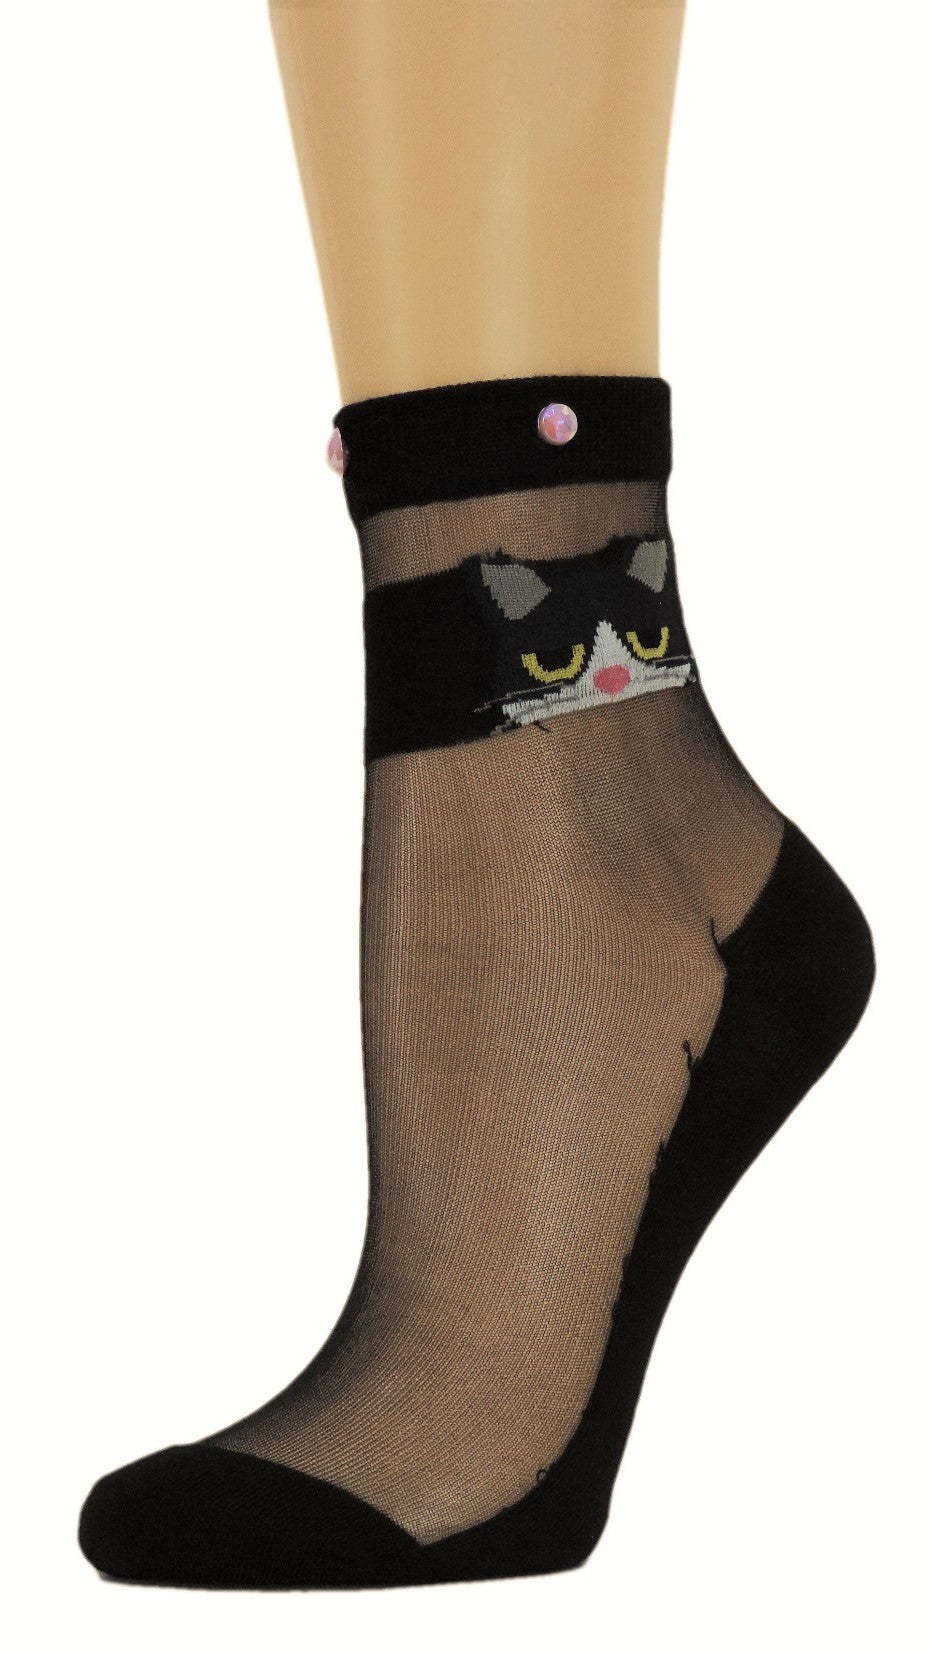 Kitty Eye Black Custom Sheer Socks with beads - Global Trendz Fashion®